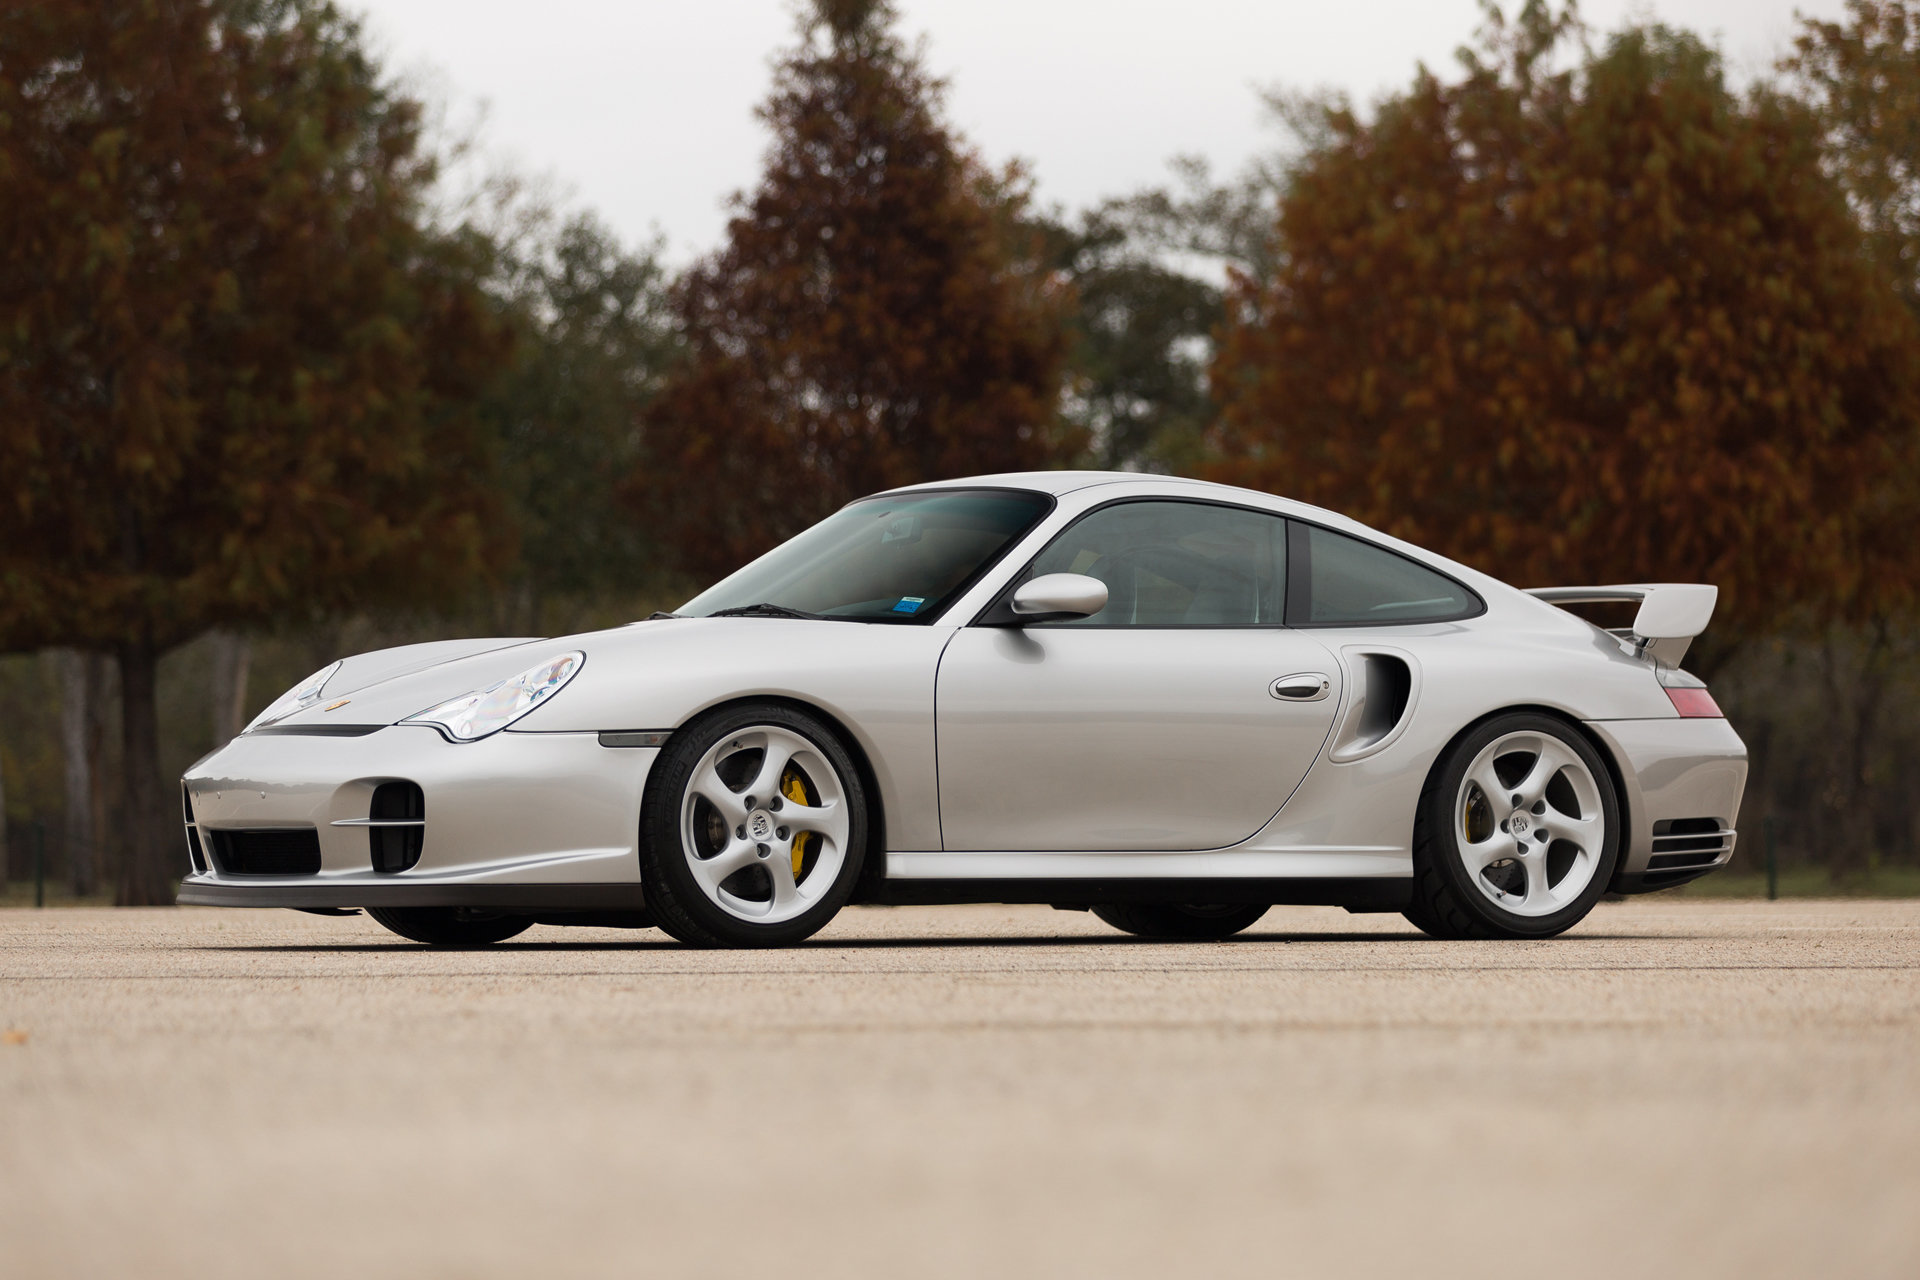 2002 porsche 911 gt2 for sale 67393 mcg. Black Bedroom Furniture Sets. Home Design Ideas